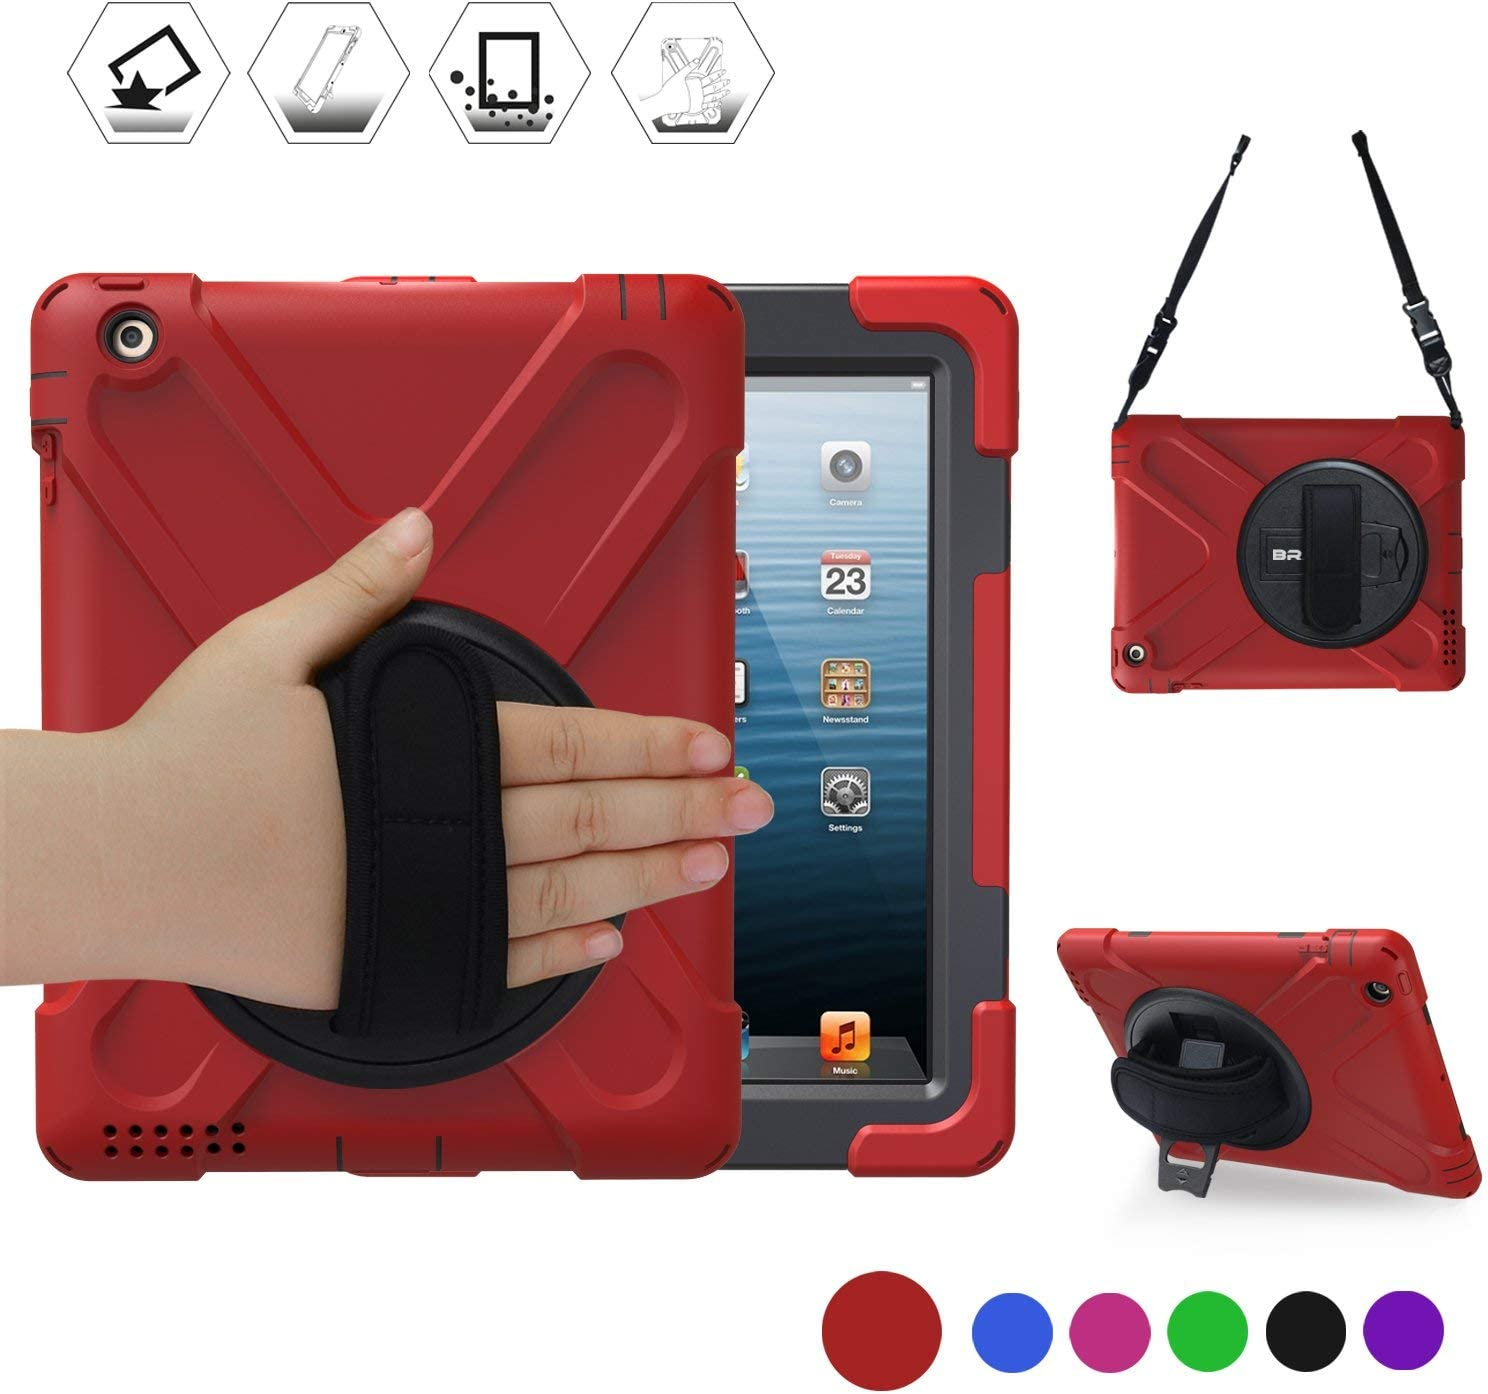 BRAECN iPad 2 Case, iPad 3 Case, iPad 4 Shockproof Case-[Heavy Duty] Full-Body Rugged Hybrid Protective Case with 360 Rotating Kickstand/Hand Strap/Shoulder Strap for ipad 4th Generation case (Red)